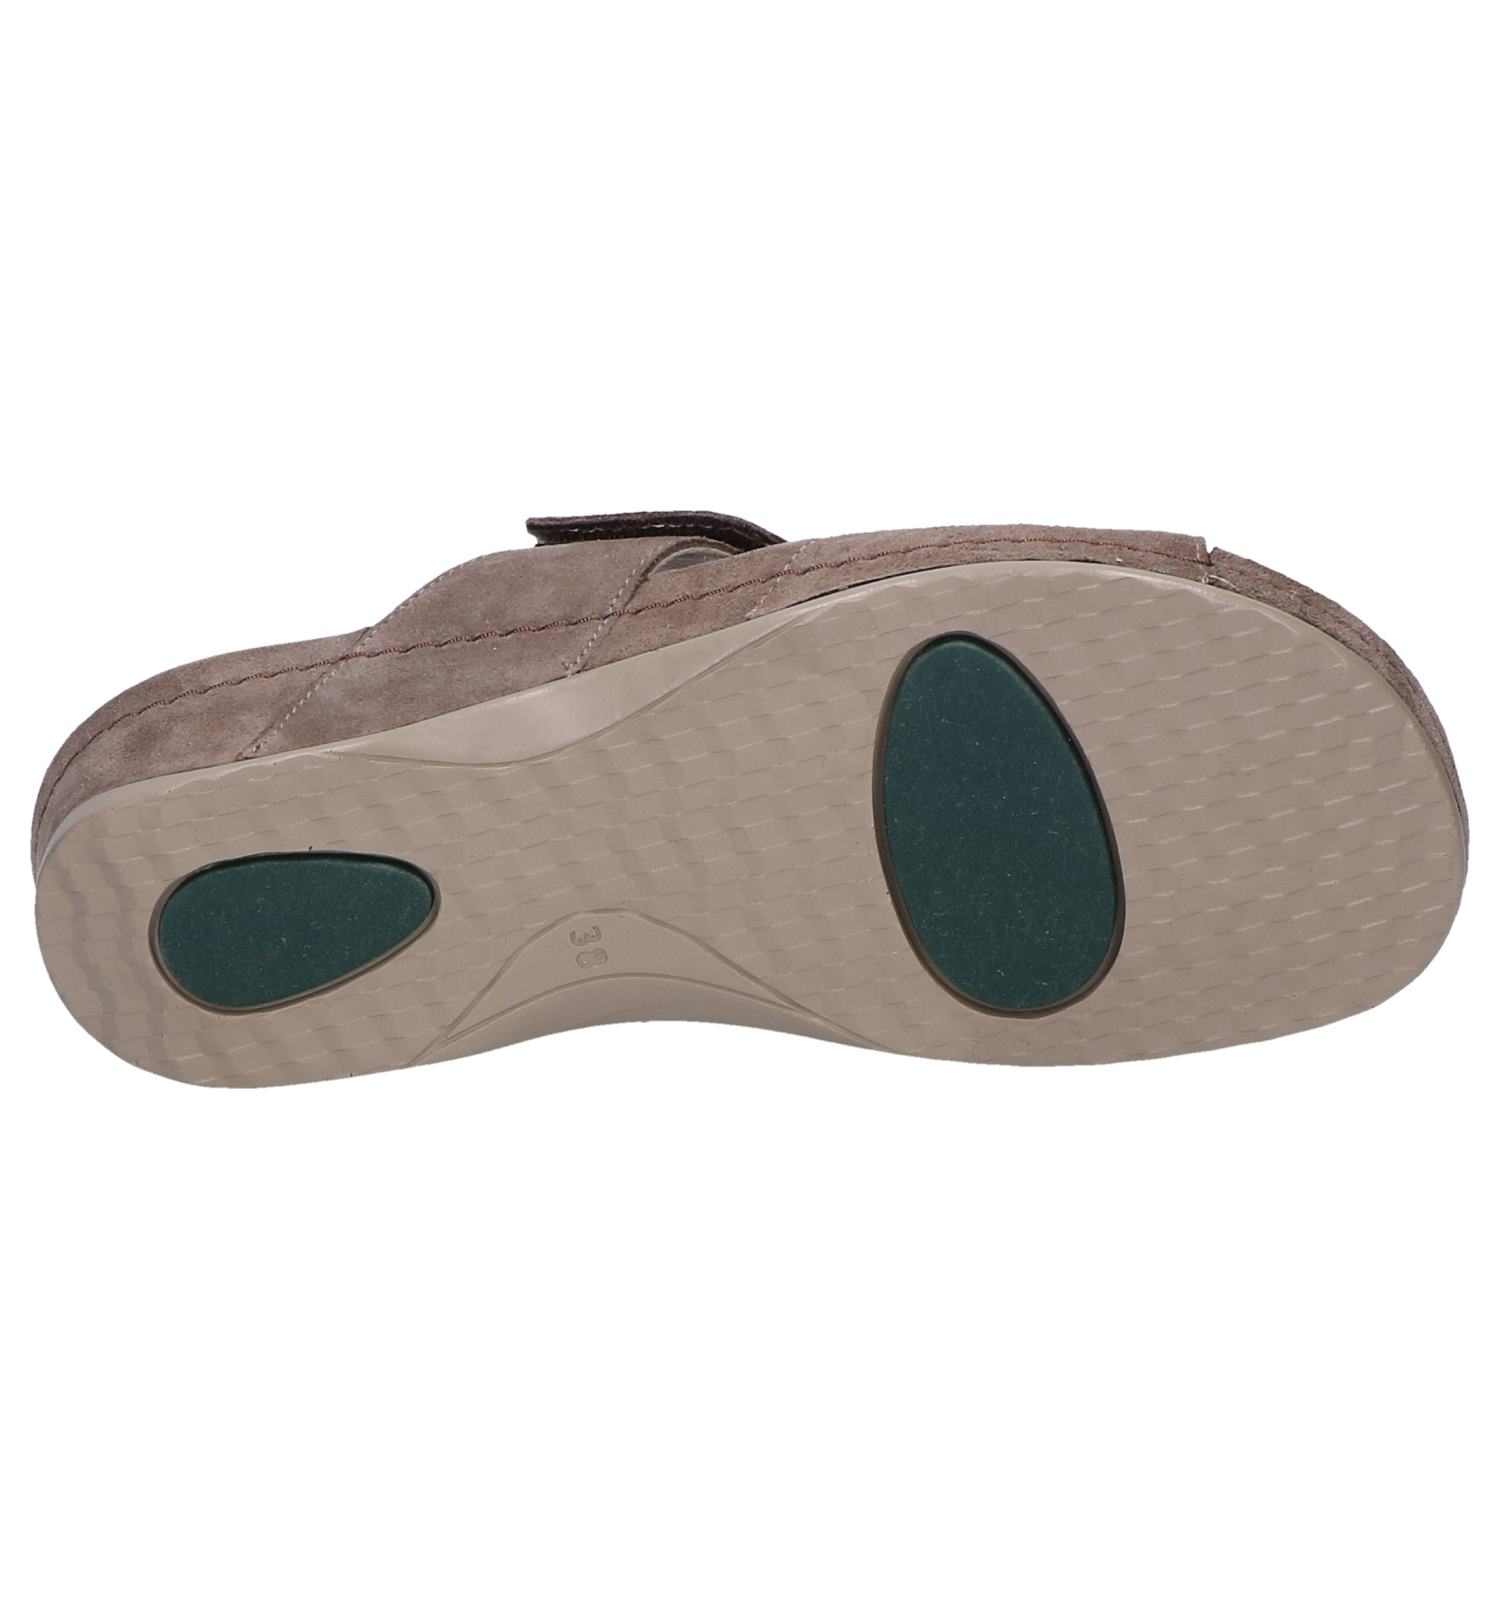 Plus Taupe Comfort Slippers Taupe Slippers WEDH29I